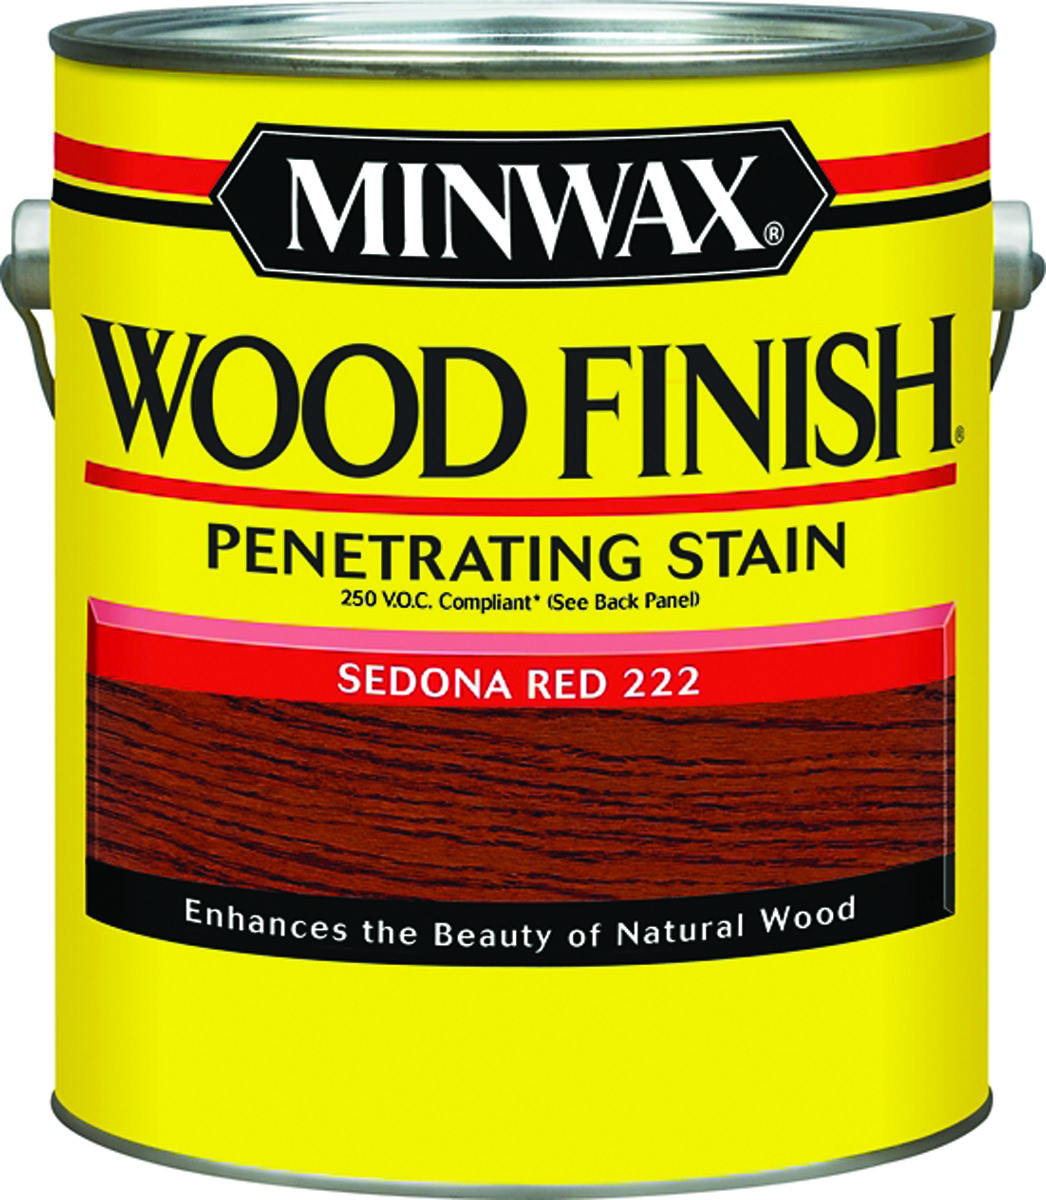 Minwax 71086 Sedona Redwood Wood Finish 250 VOC Compliant